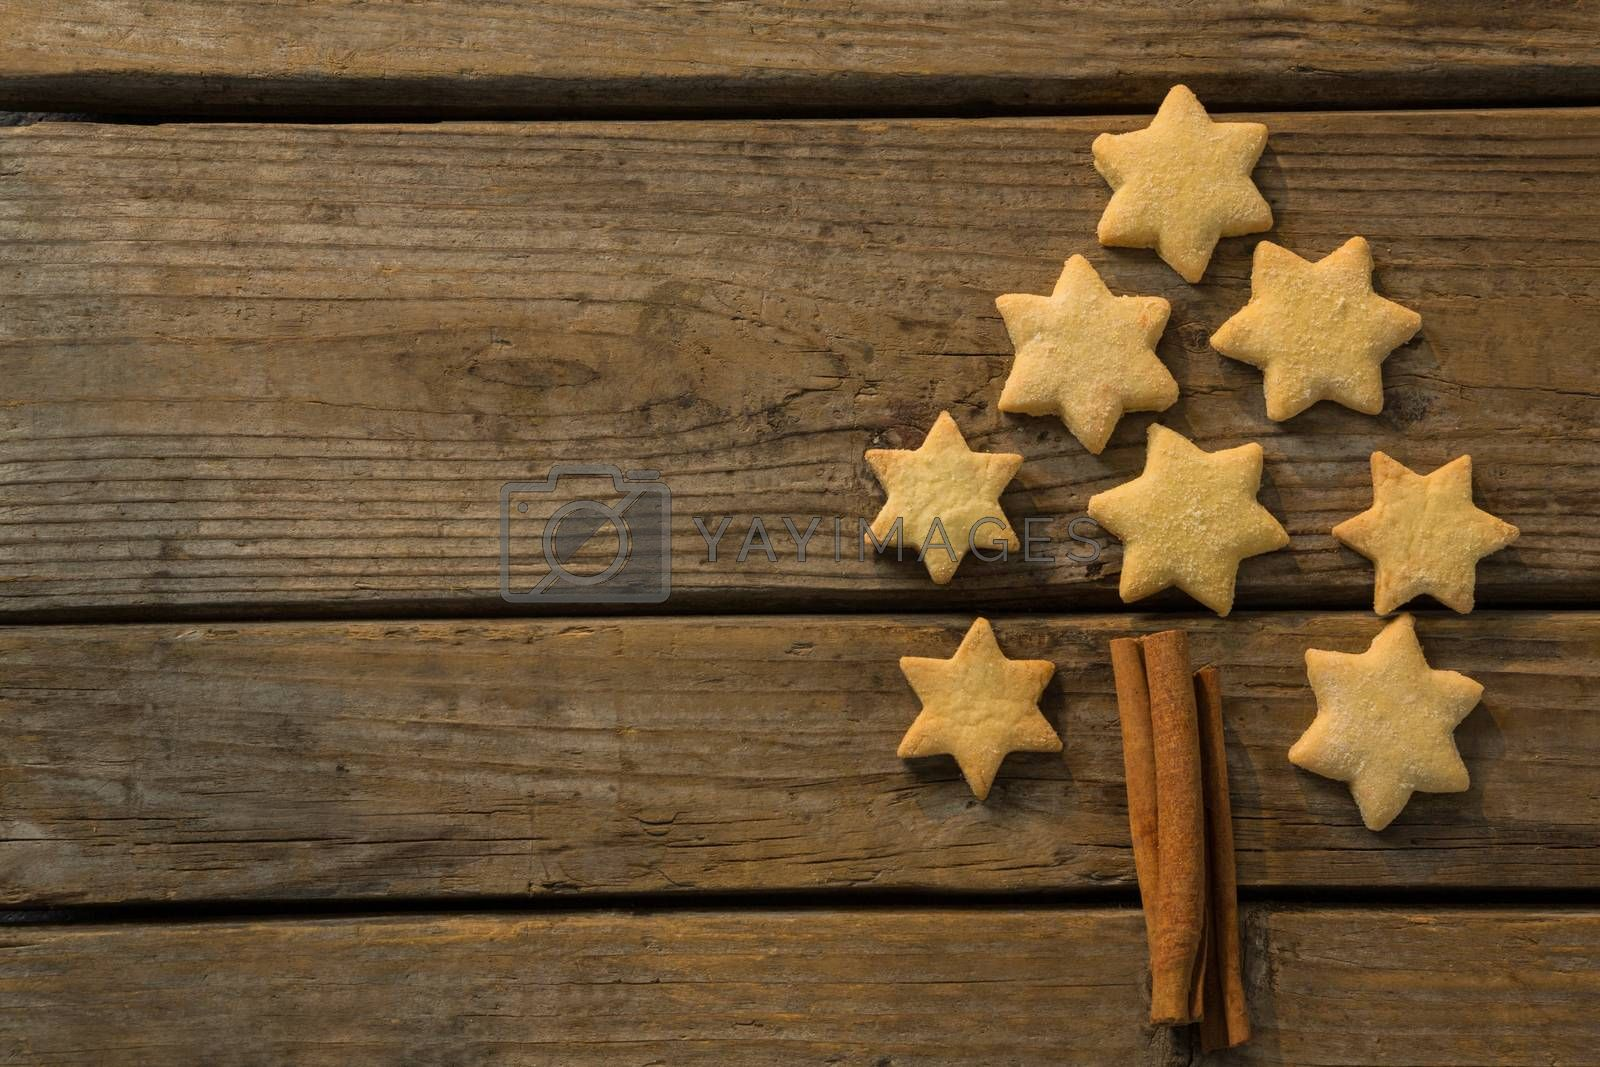 Christmas tree made with star shape cookie and cinnamon stick by Wavebreakmedia